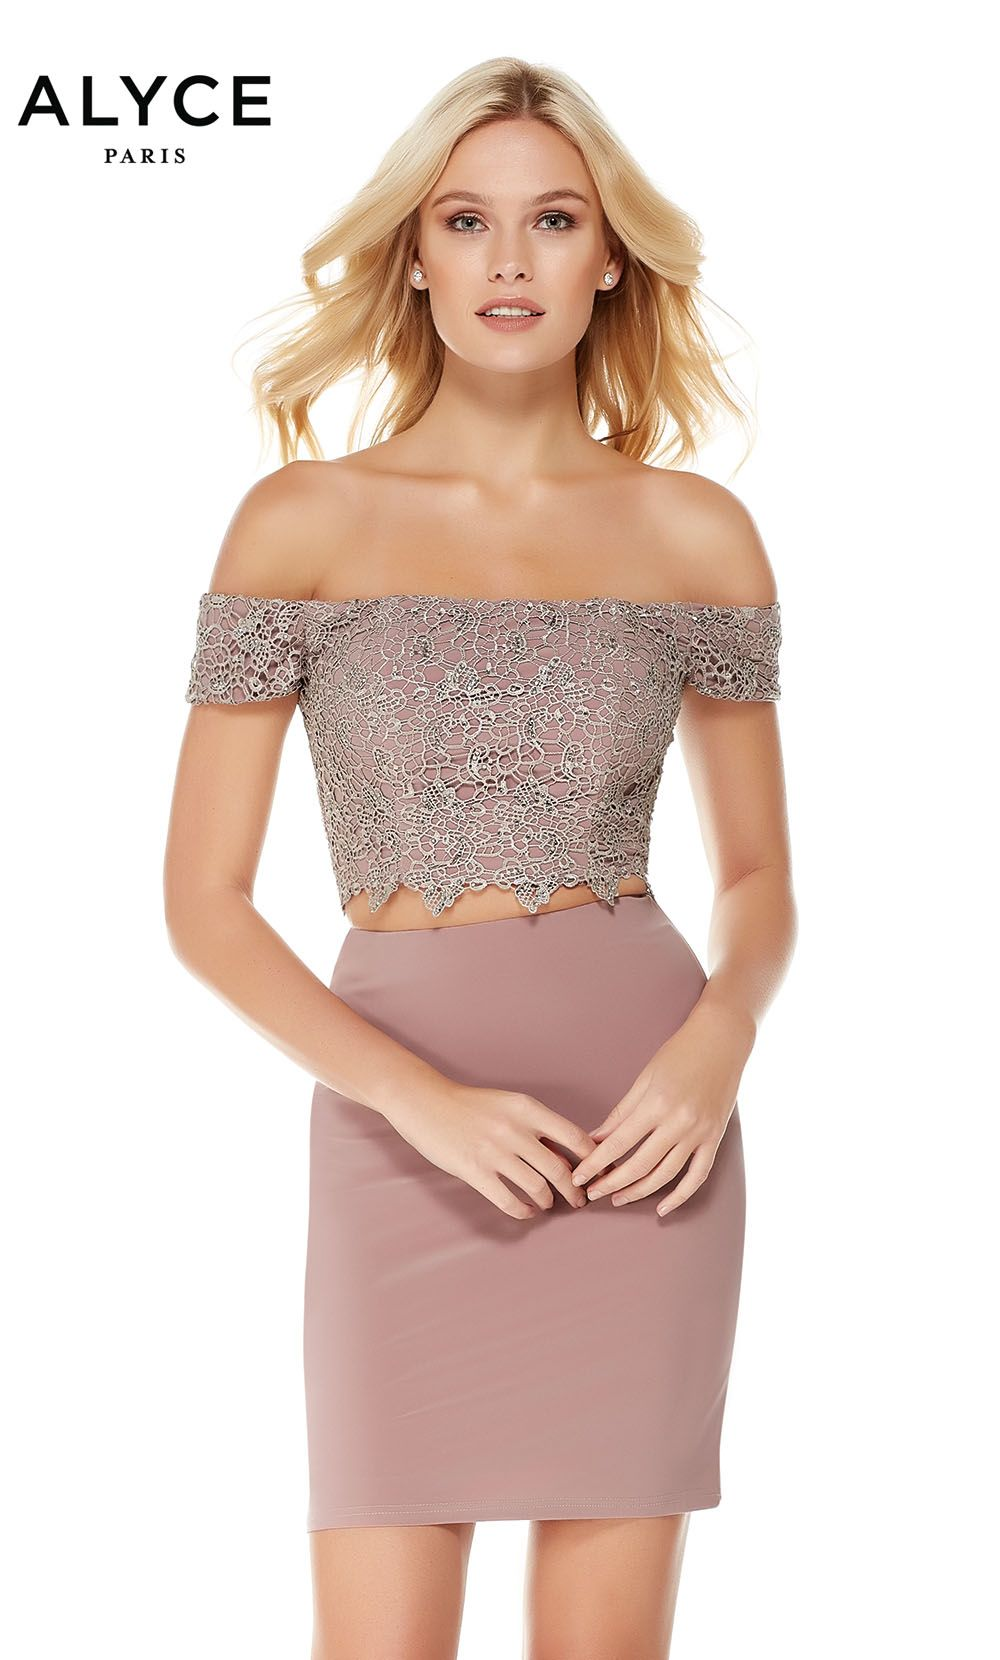 Alyce Paris 4043 Off The Shoulder 2 Piece Short Party Dress In 2021 Alyce Paris Dresses Homecoming Dress Stores Homecoming Dresses [ 1660 x 1000 Pixel ]